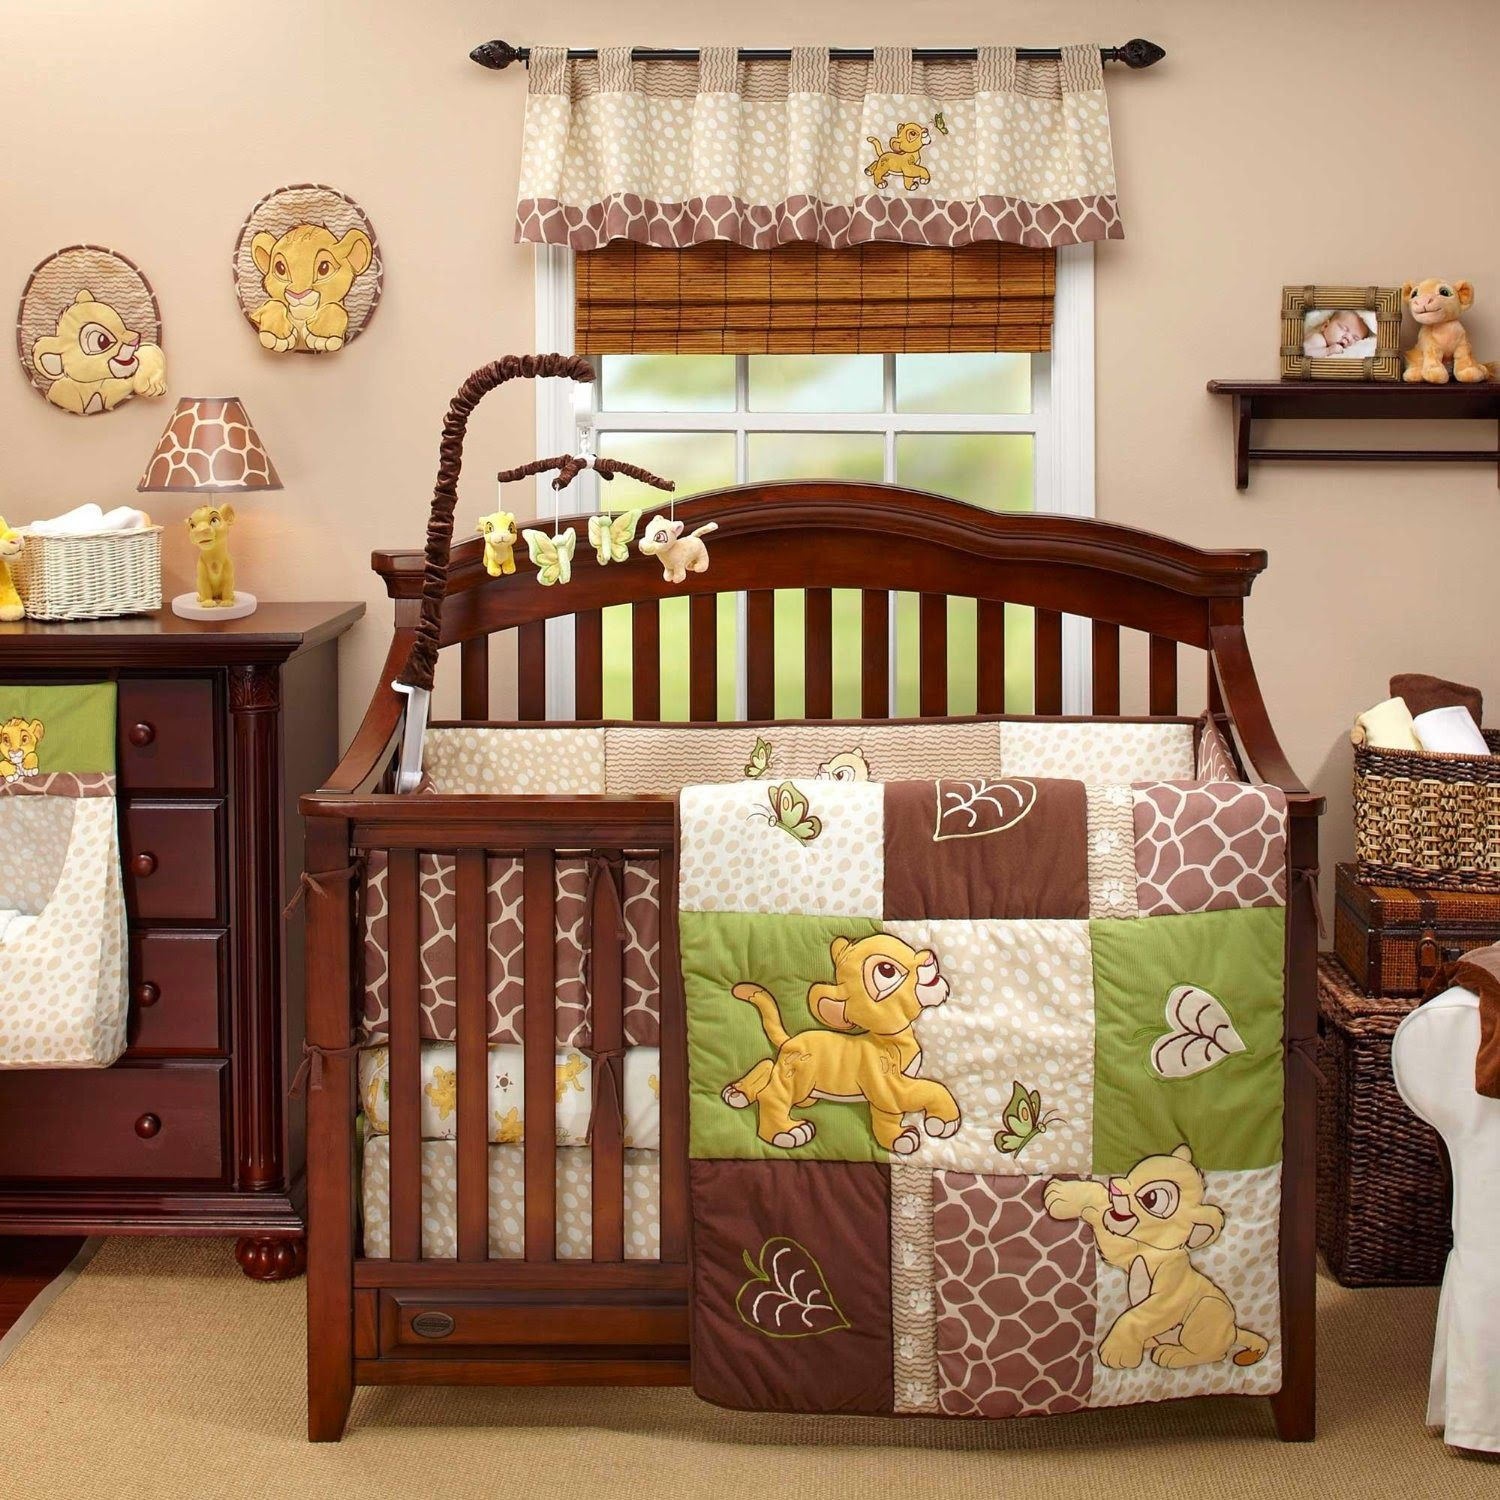 Crib for sale in palm bay - We Found A Ton Of Lion King Baby Nursery Decor And Crib Sets